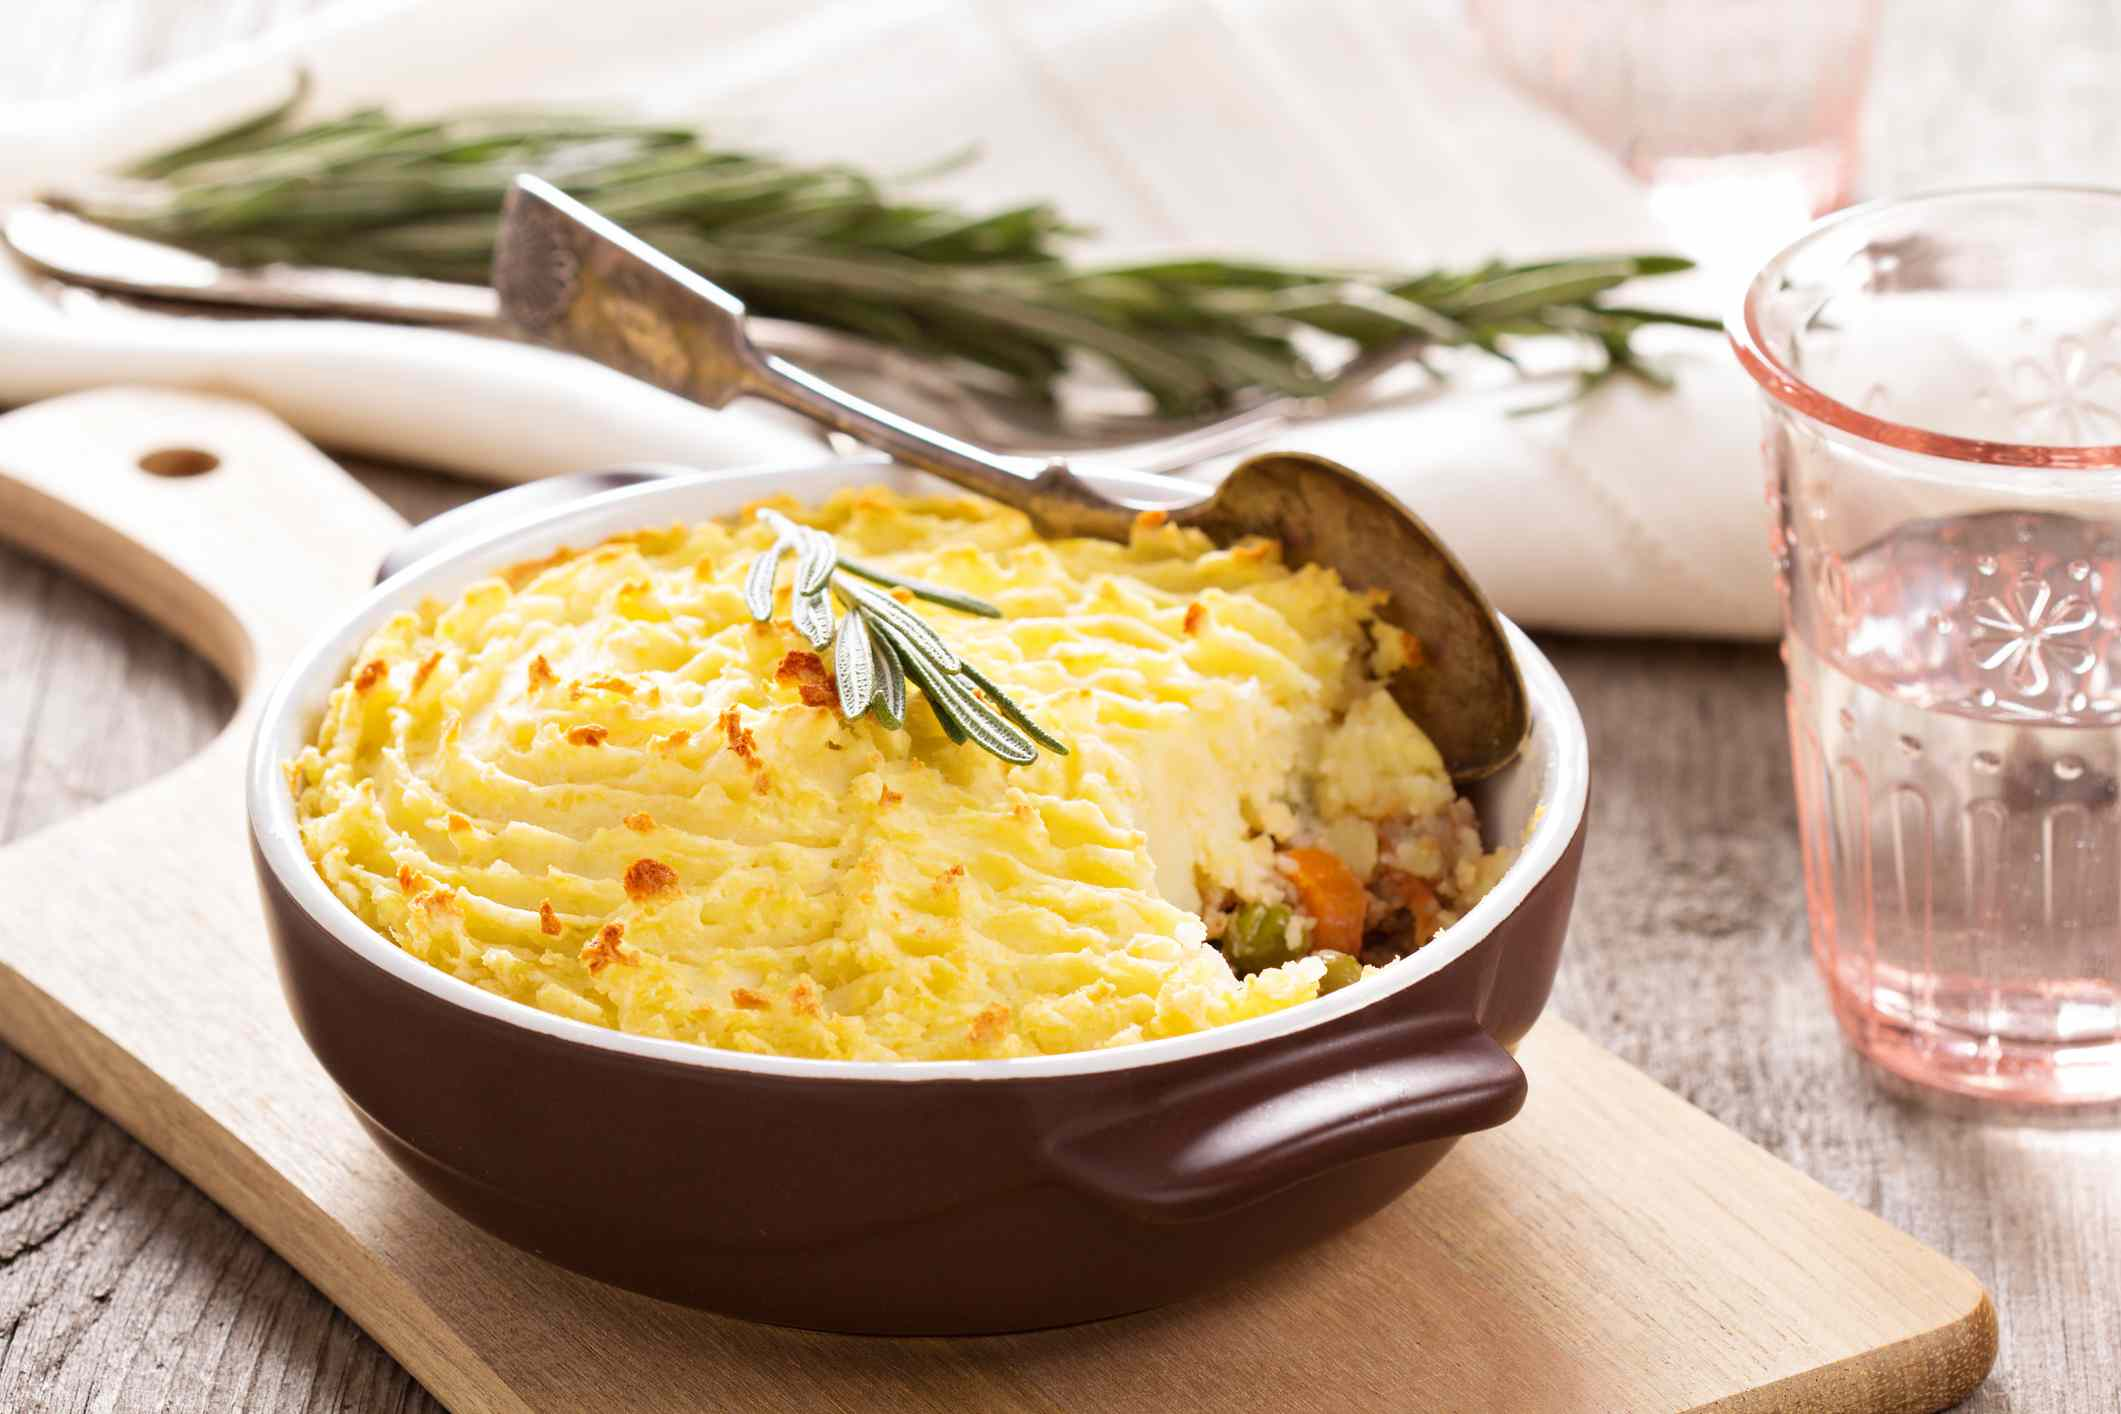 Dish of shepherds pie ready to be served on a cutting board